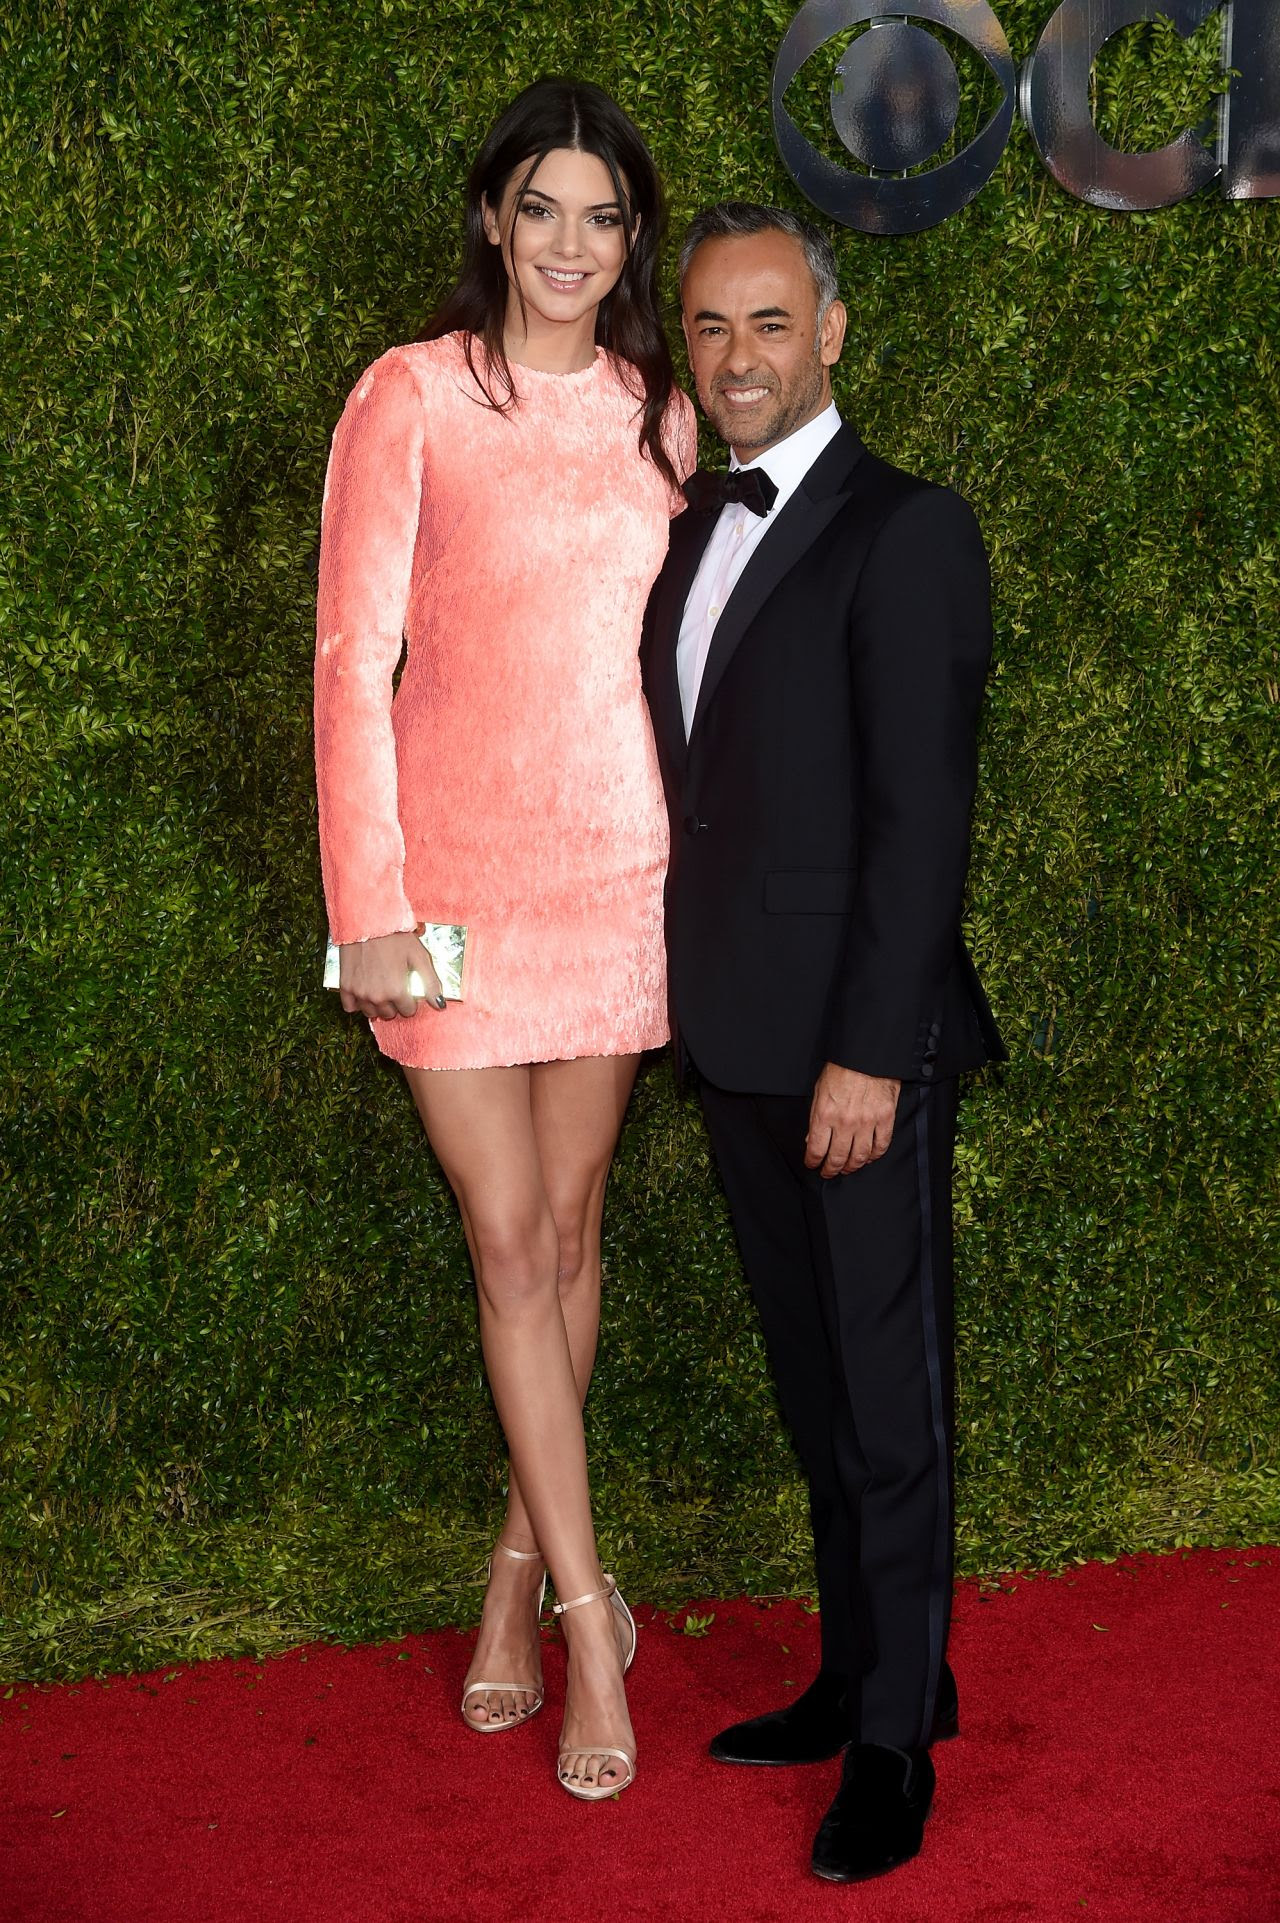 http://fashionsizzle.com/wp-content/uploads/2015/06/kendall-jenner-2015-tony-awards-in-new-york-city_10.jpg